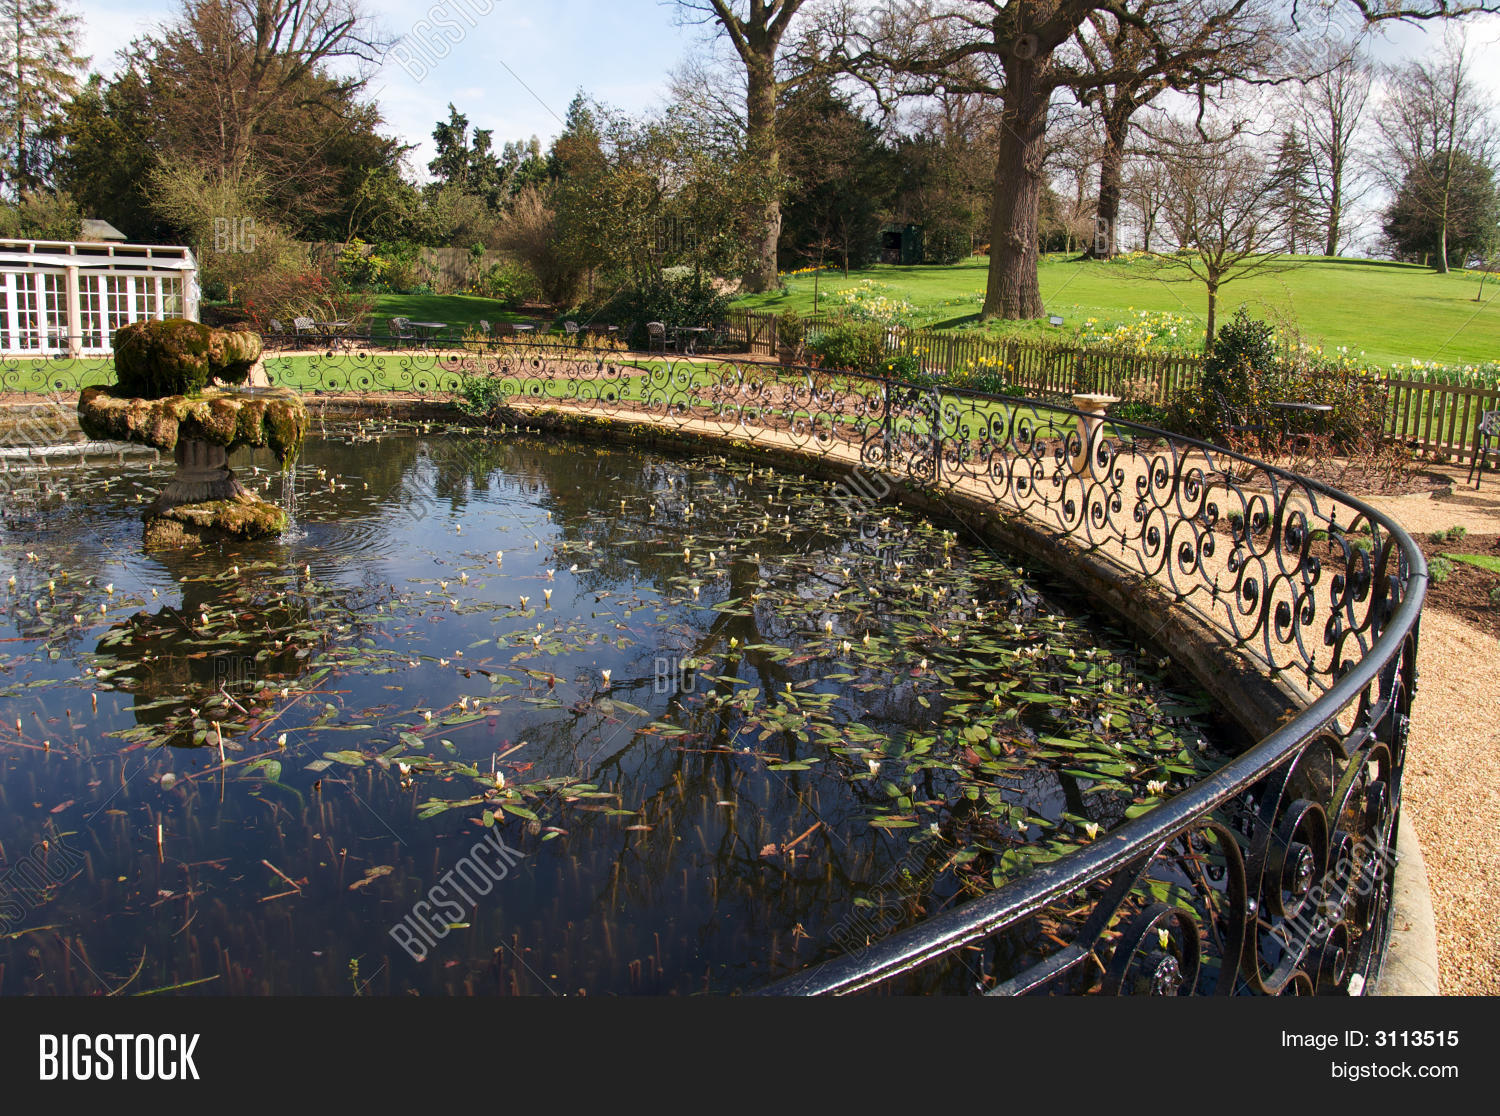 Ornamental fish pond image photo bigstock for Ornamental fish garden ponds